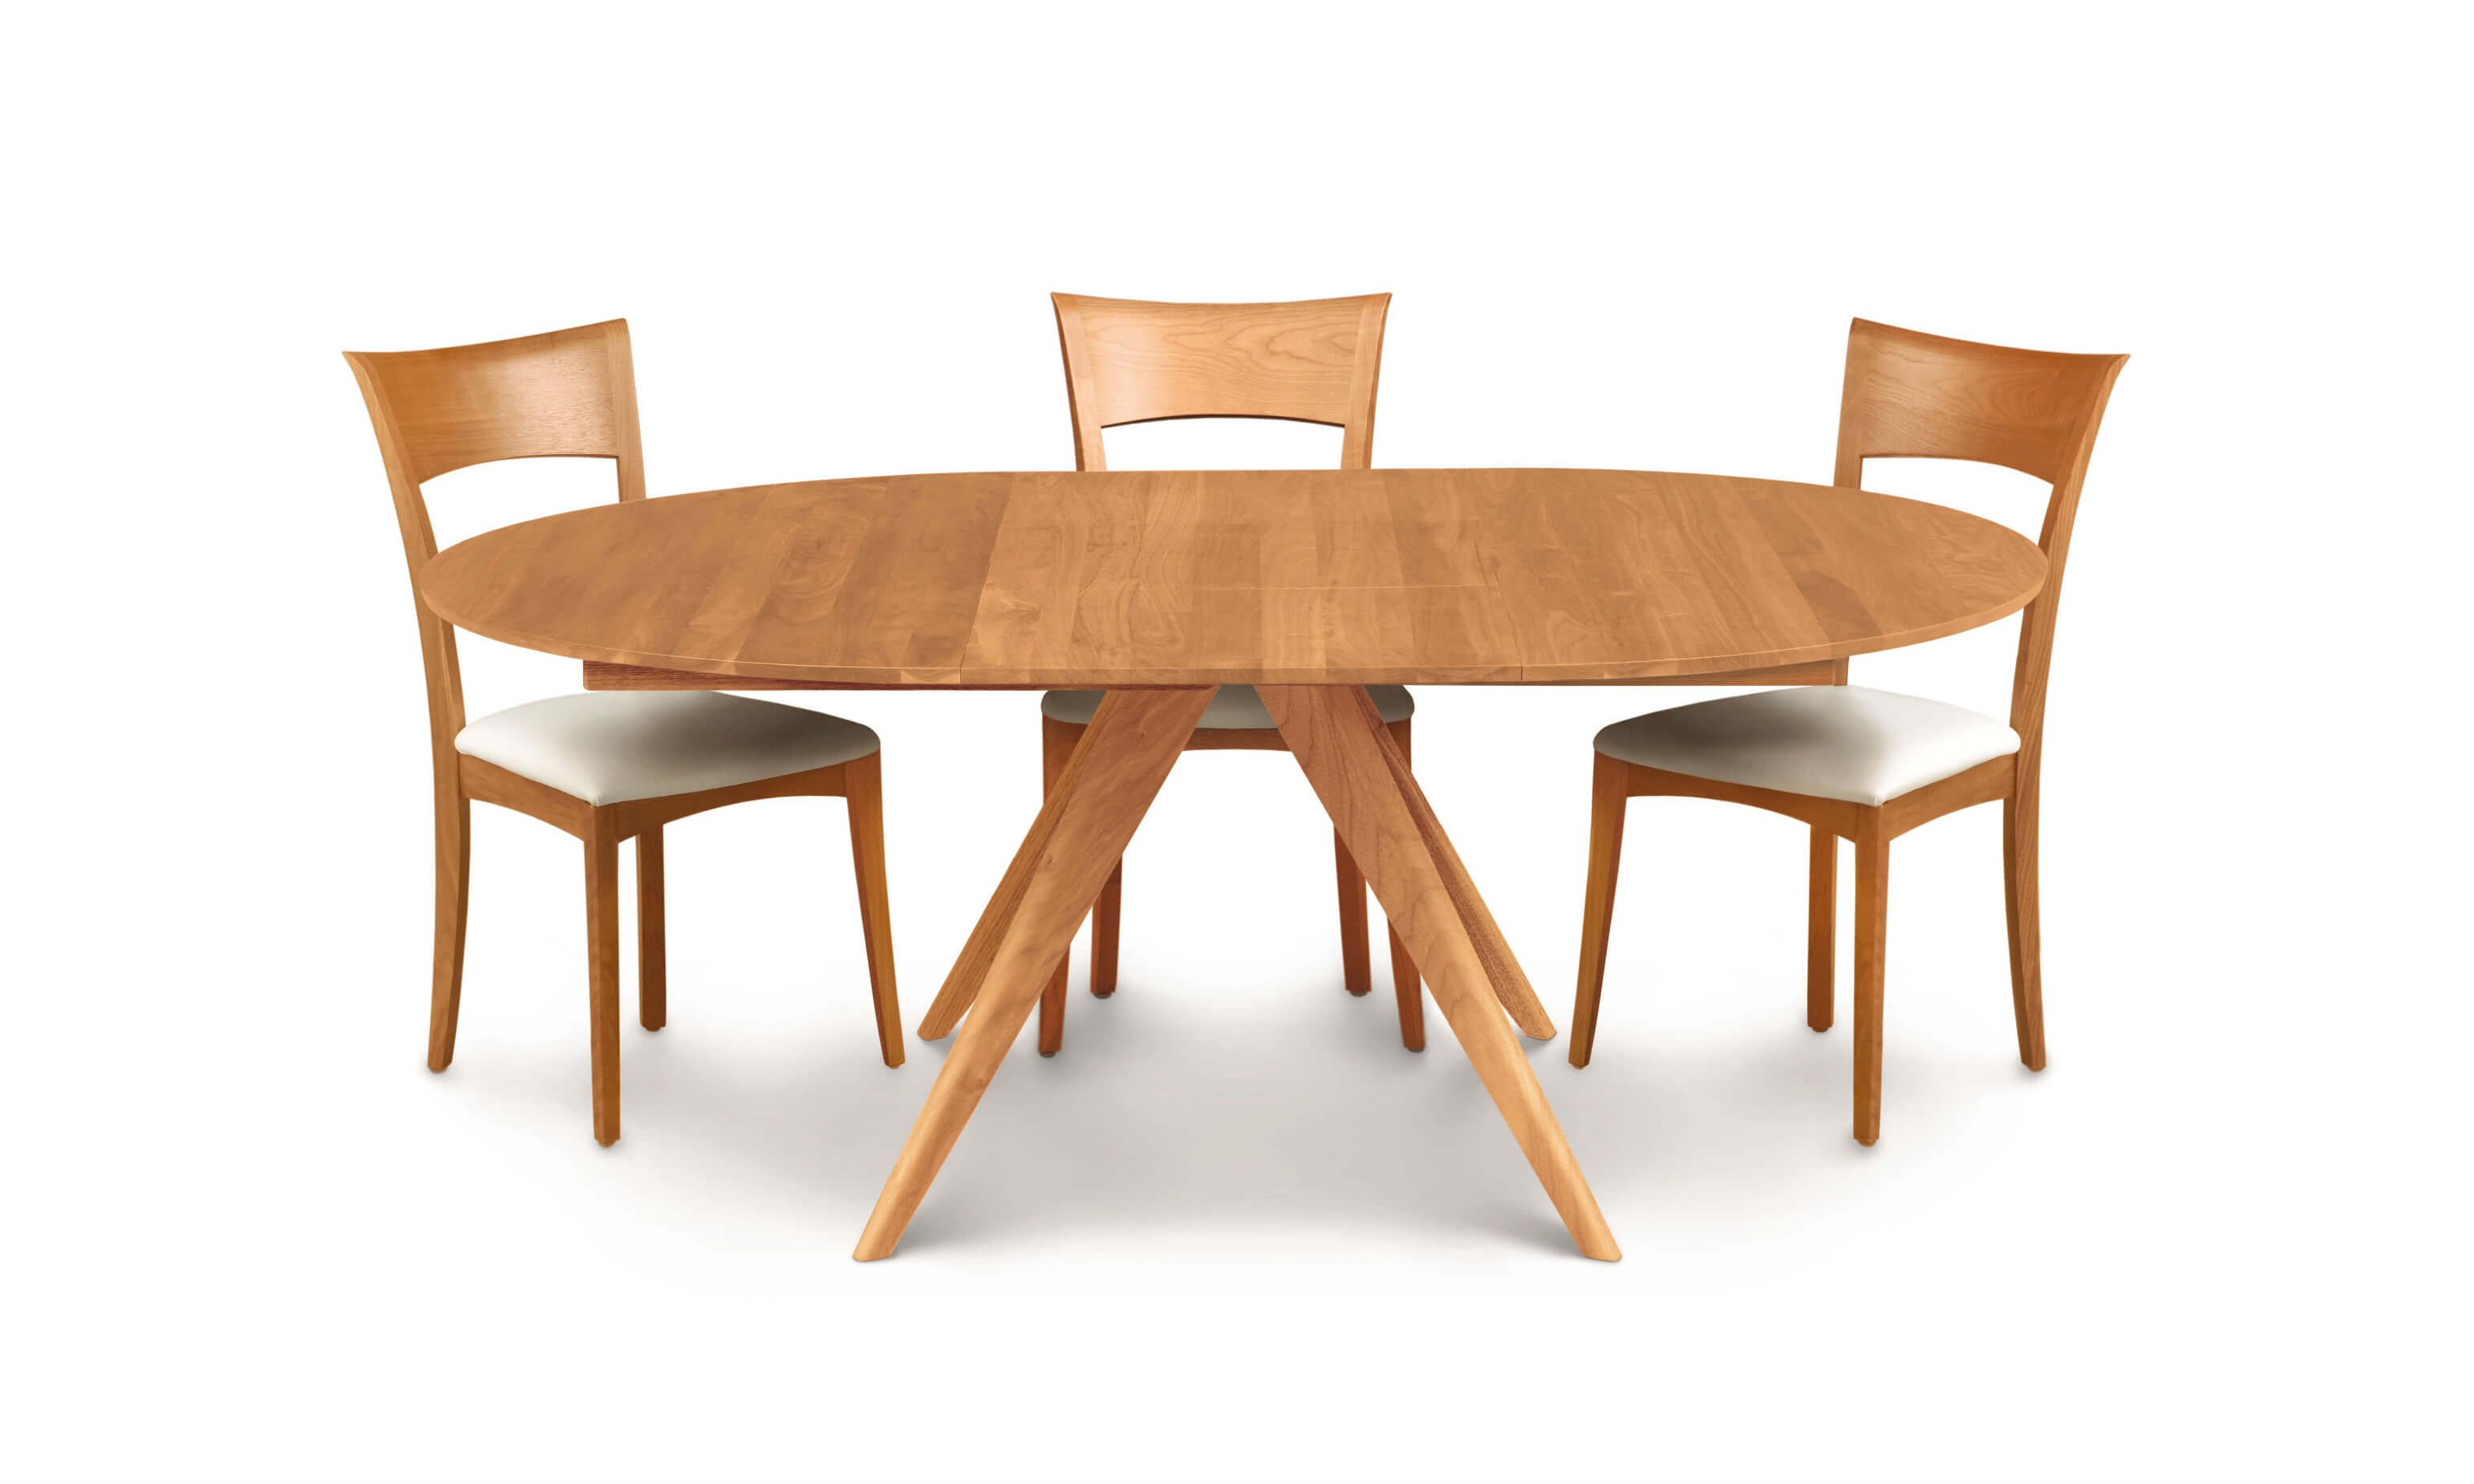 Catalina dining table by copeland